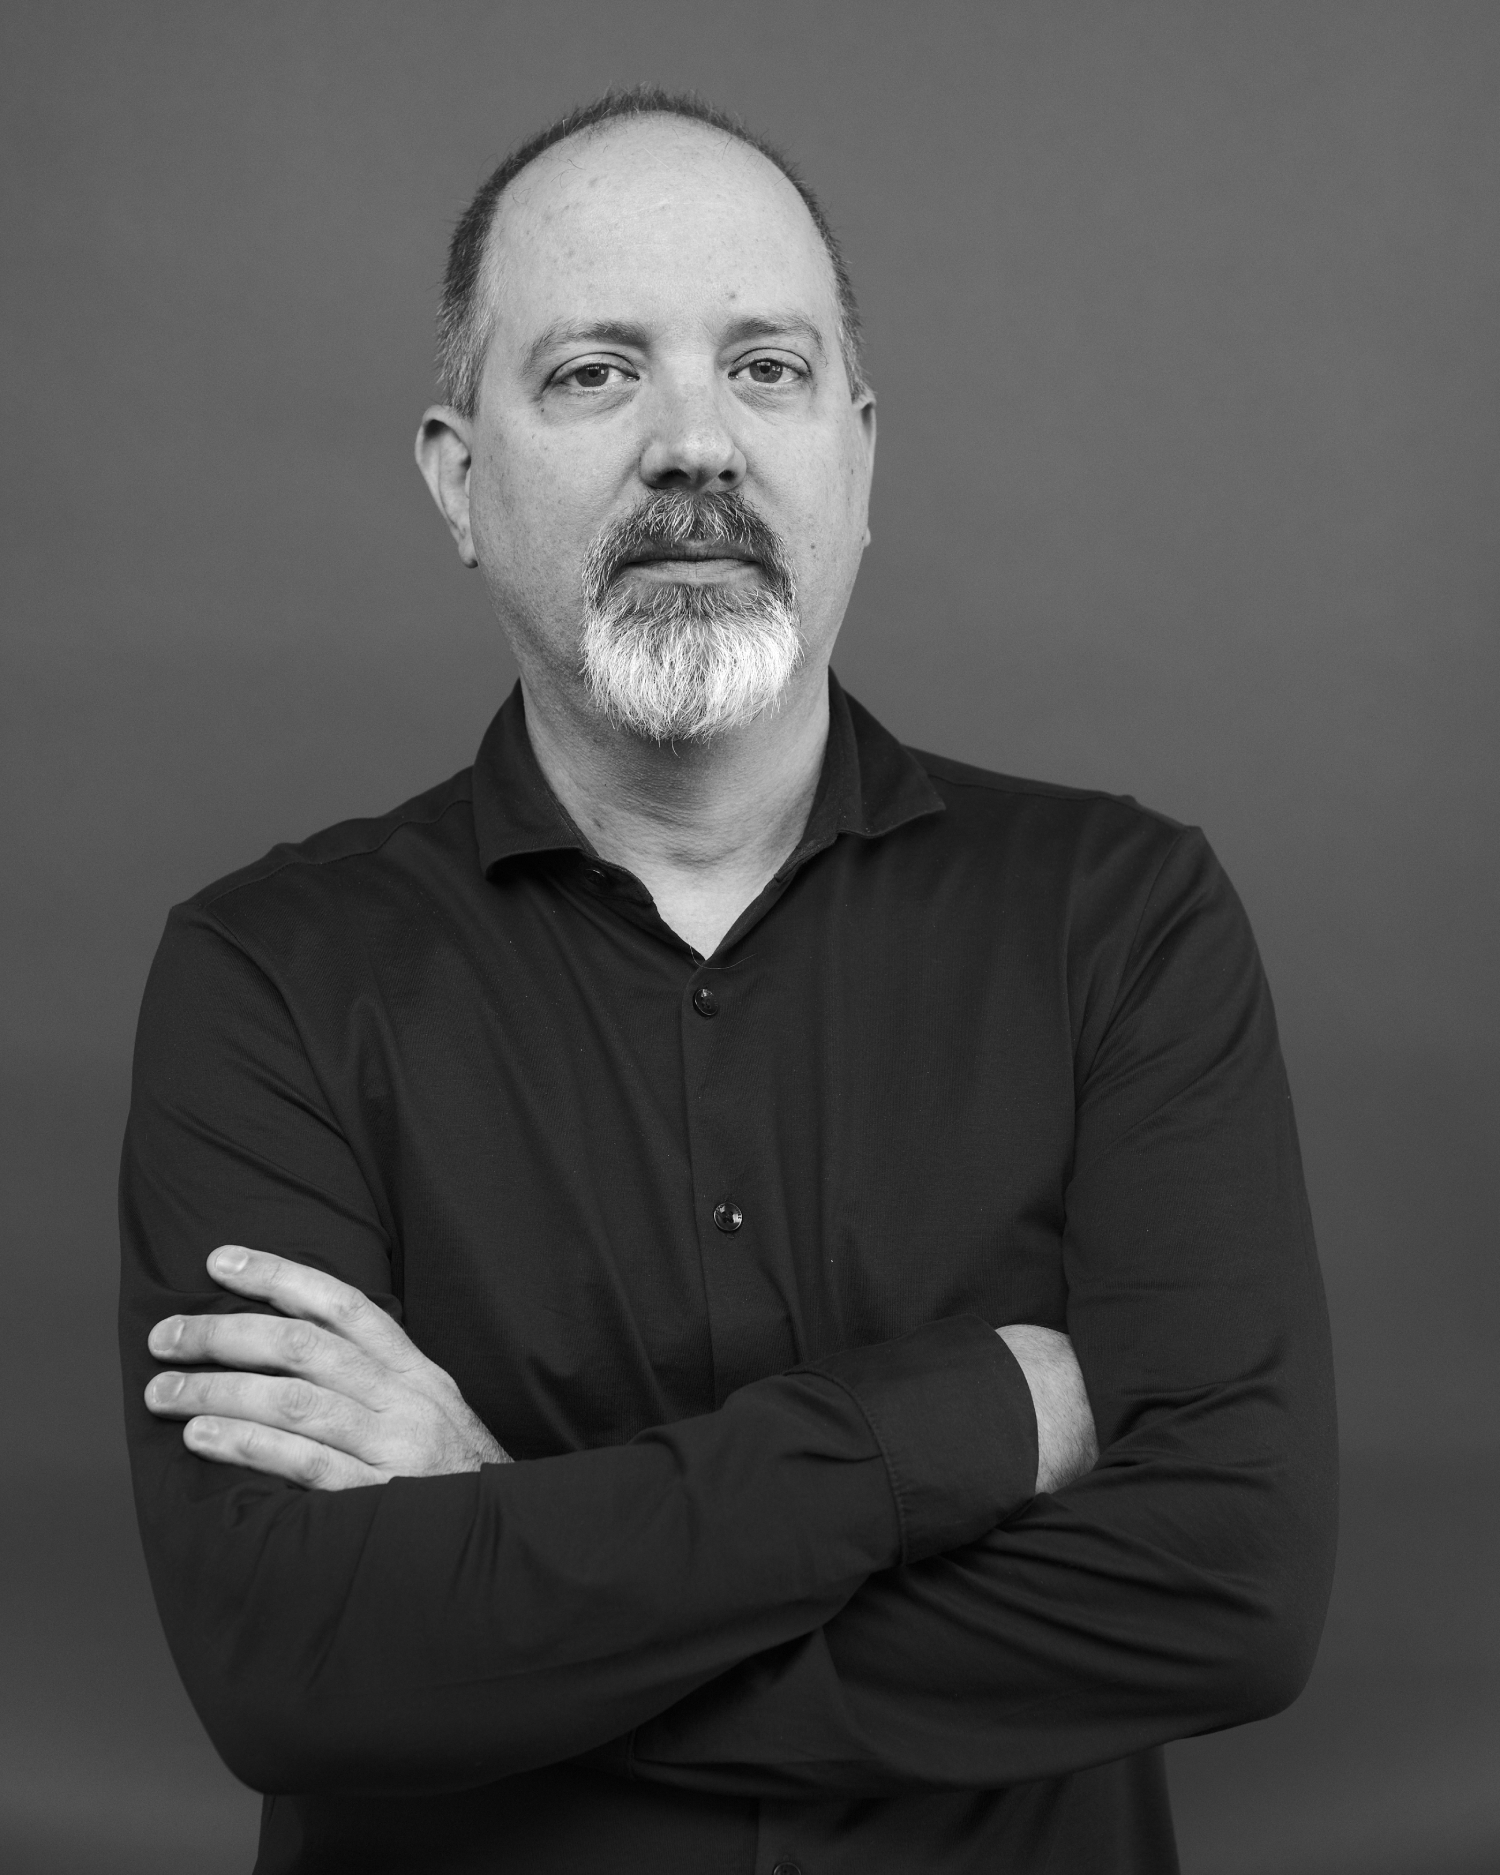 Faustino Gomez, CEO and co-founder of NNAISENSE